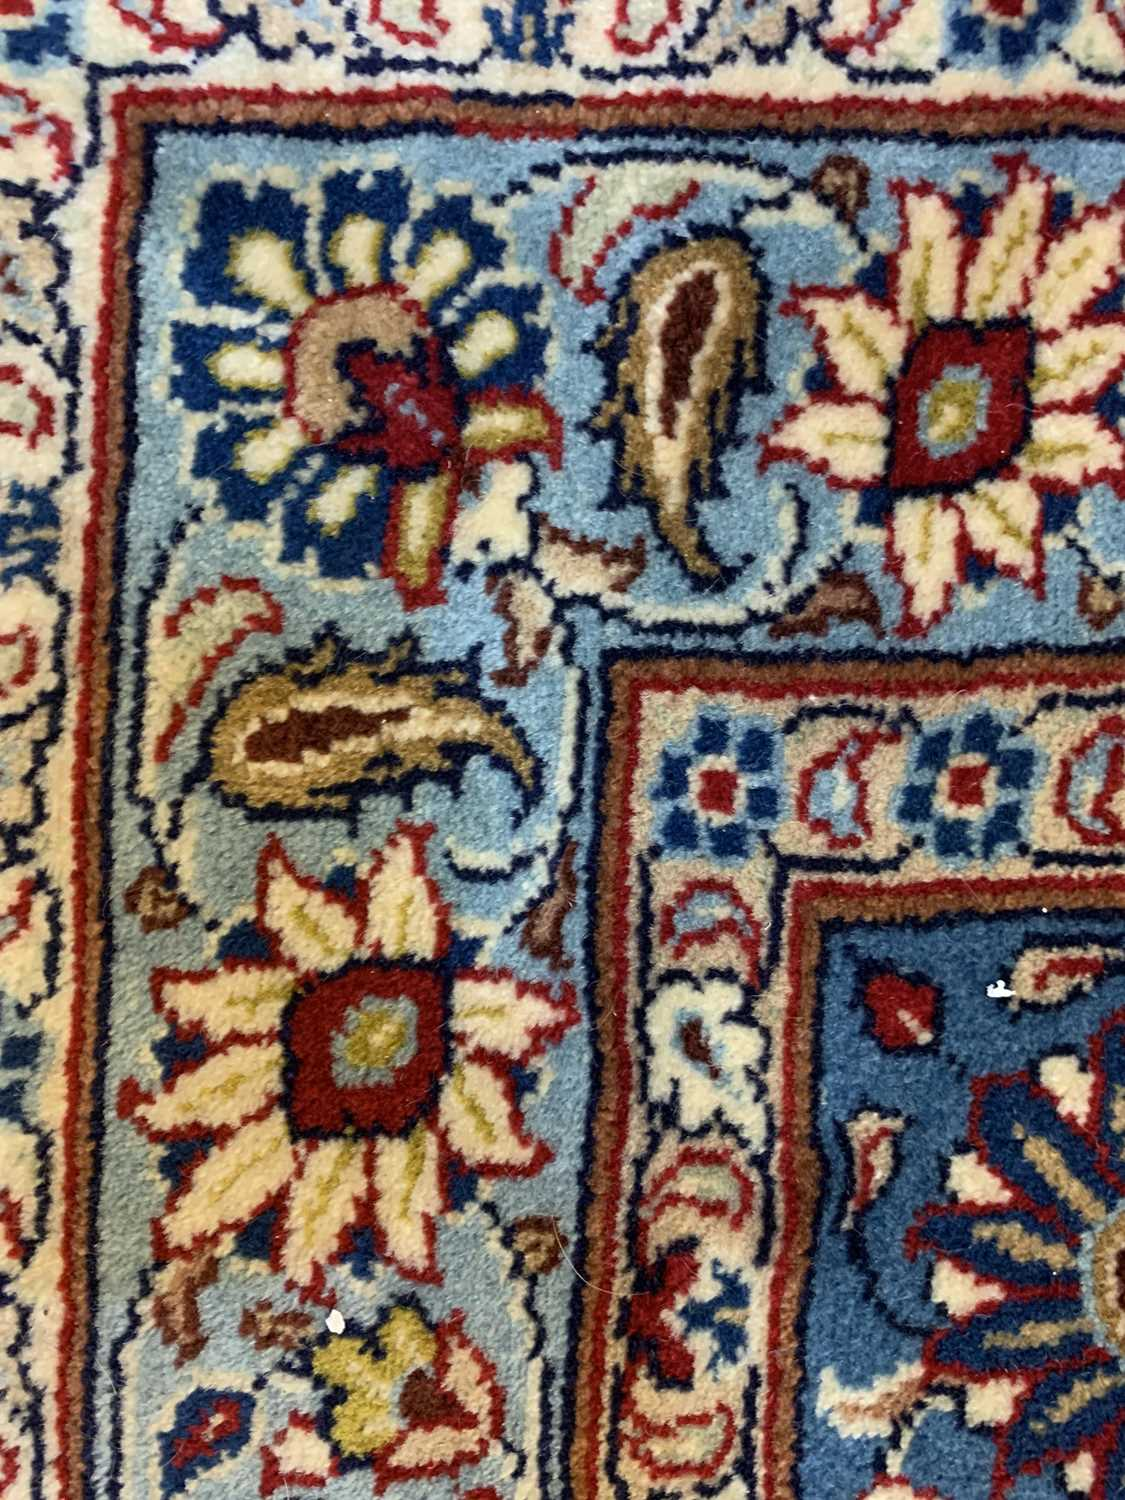 A large Persian Khorassan carpet, - Image 7 of 17